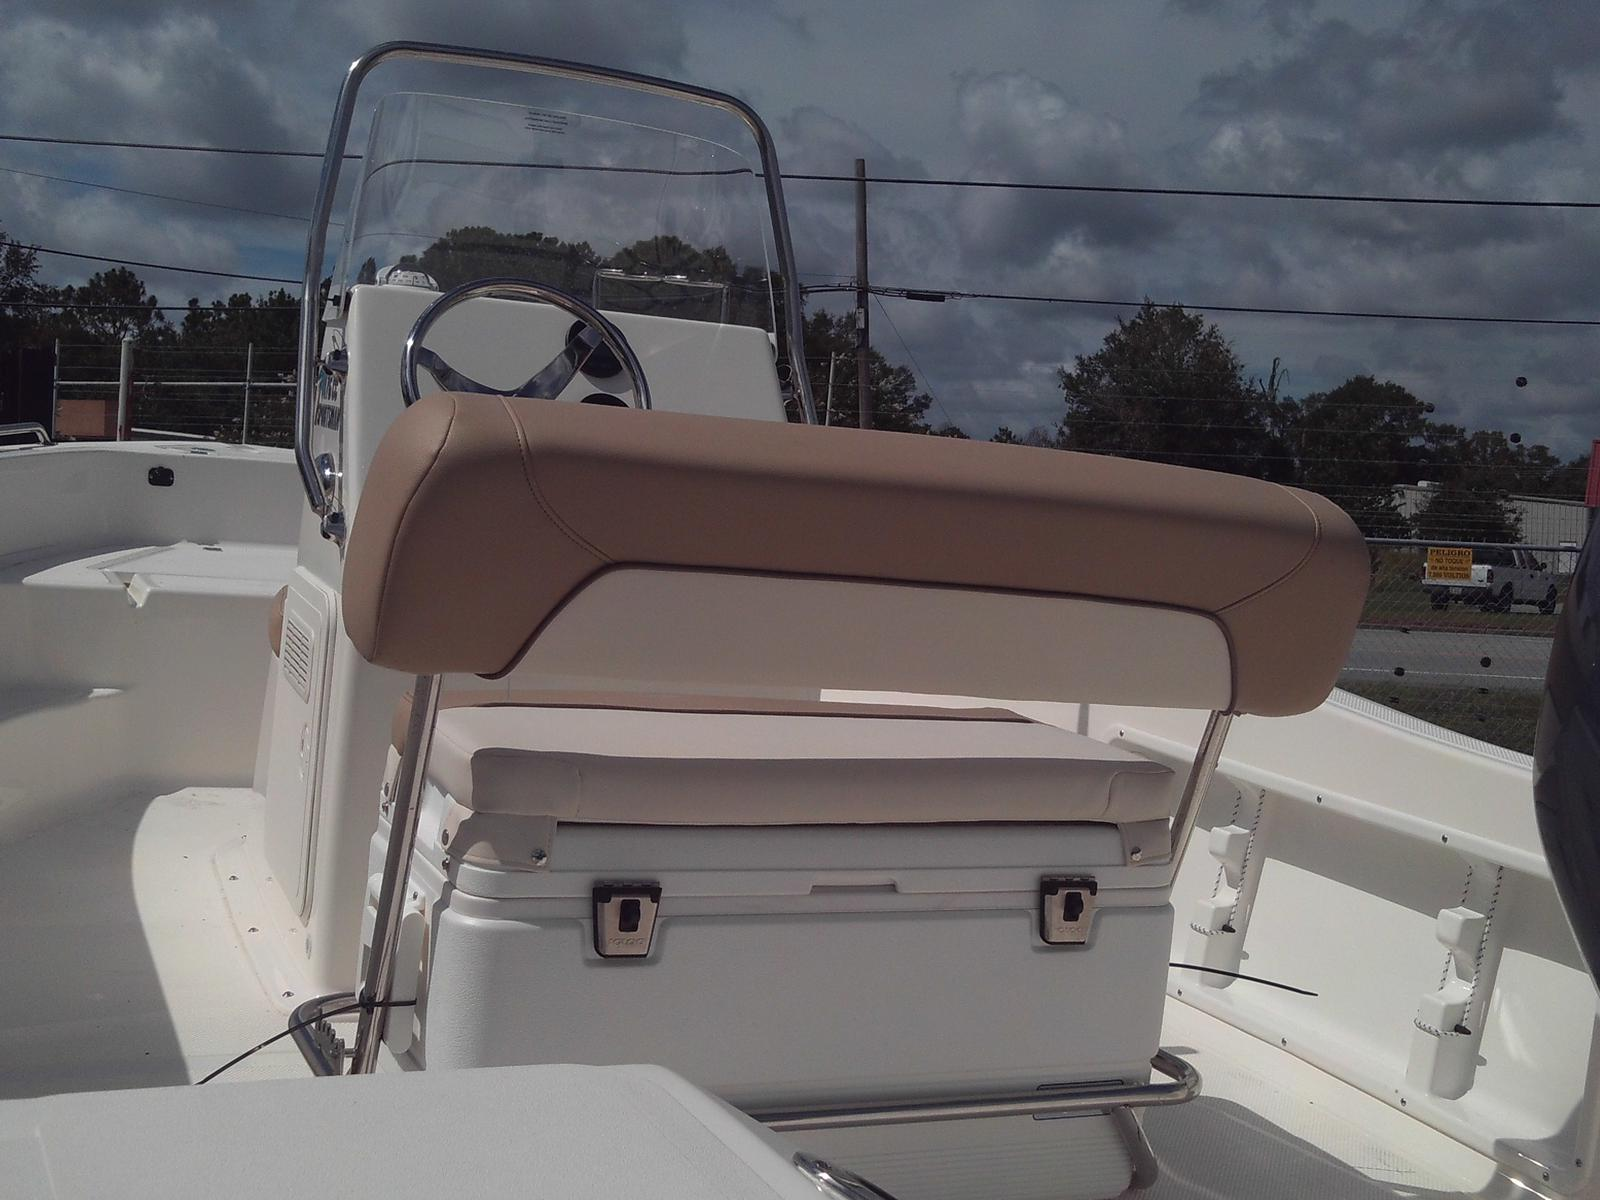 2019 Key West boat for sale, model of the boat is 176cc & Image # 6 of 6